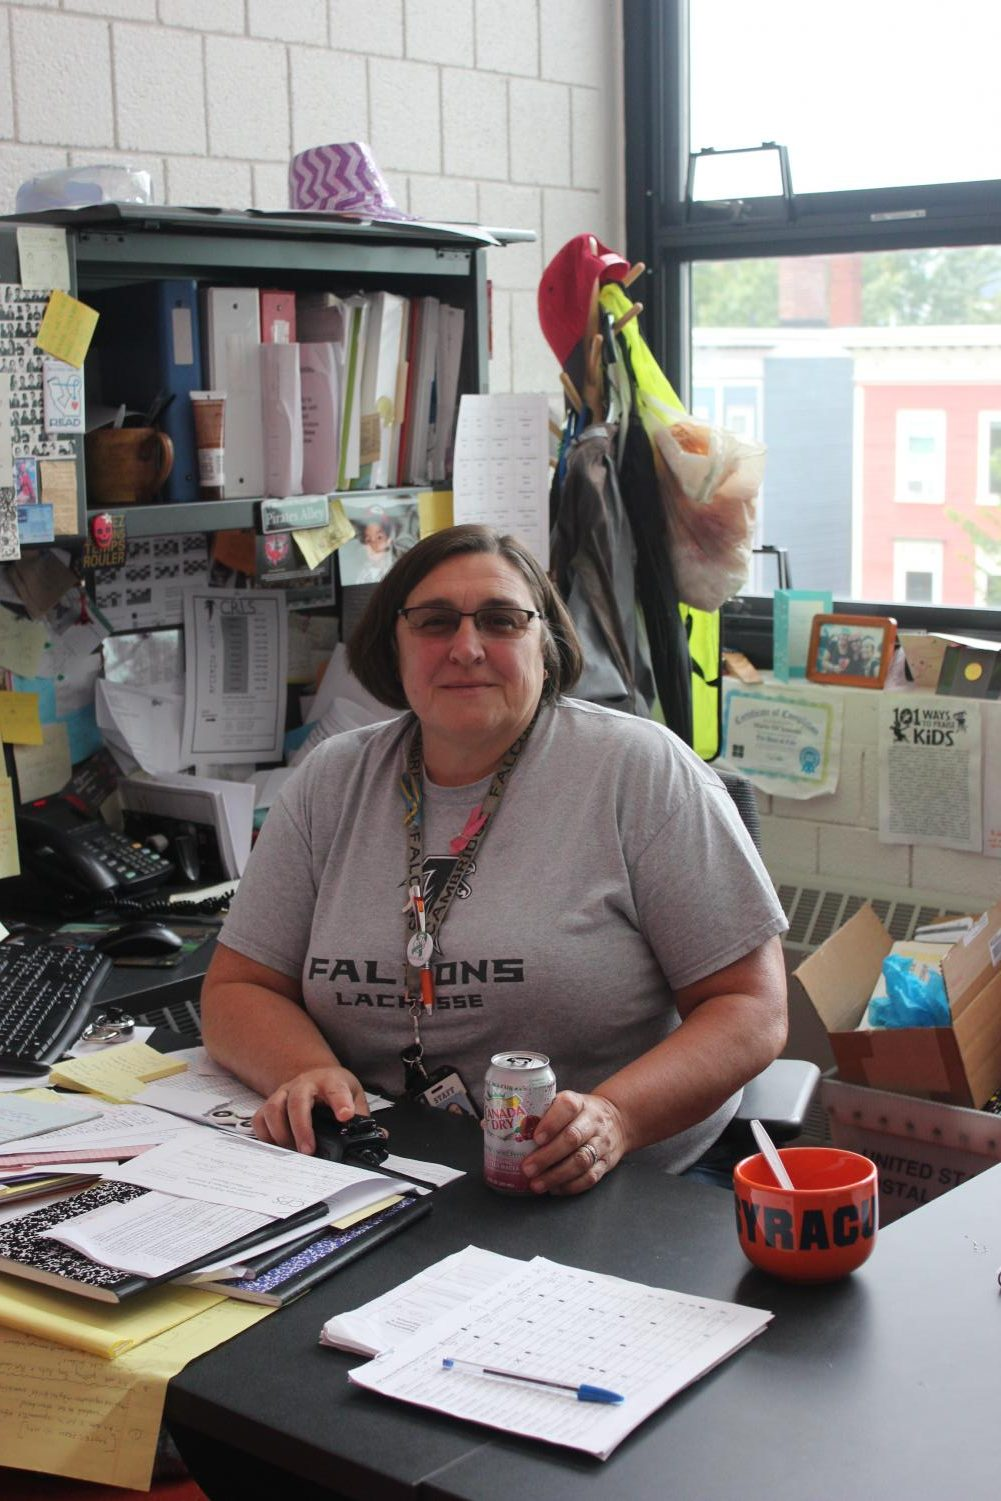 Pictured: Ms. DiClemente '82 in her office.